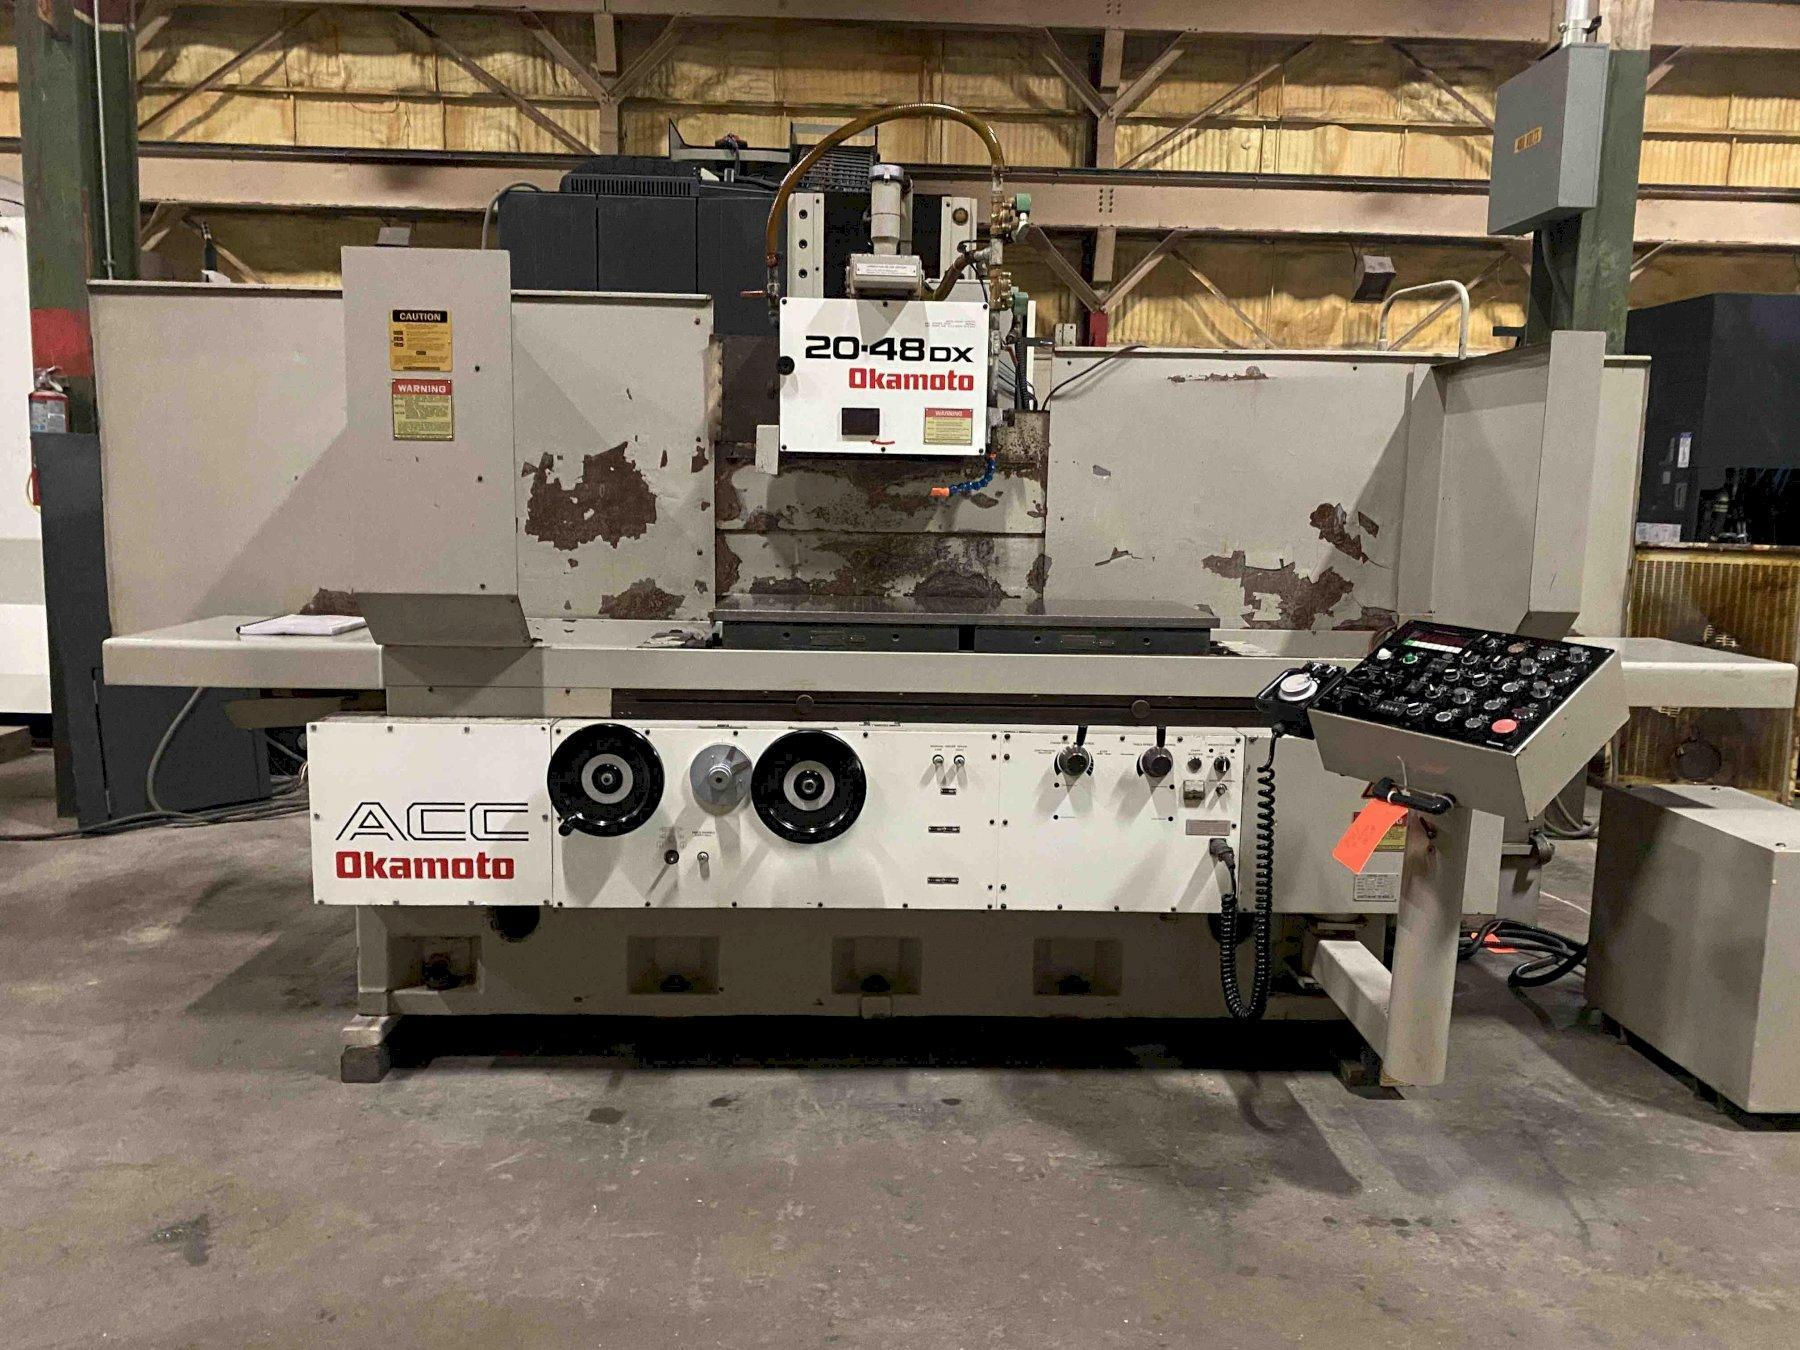 Okamoto ACC20-48DX, DX Control w/LED Display, Incr Downfeed, OTW Hyd Dresser, Sparkout, Rough/Fine Finish, Plunge, Coolant, Ballscrew on Vertical, 20 HP,  20